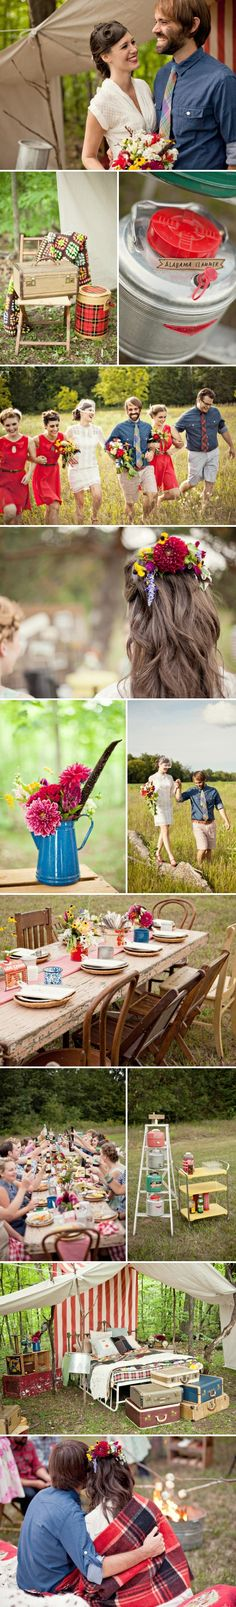 Wedding Party (and much more) - I love the relaxed nature of this shot. I definitely want the bridesmaids eclectic and everyone comfortable. We might adjust the color scheme though. I am thinking khakis for the men.  I also love all the vintage campy ideas and the flowers.